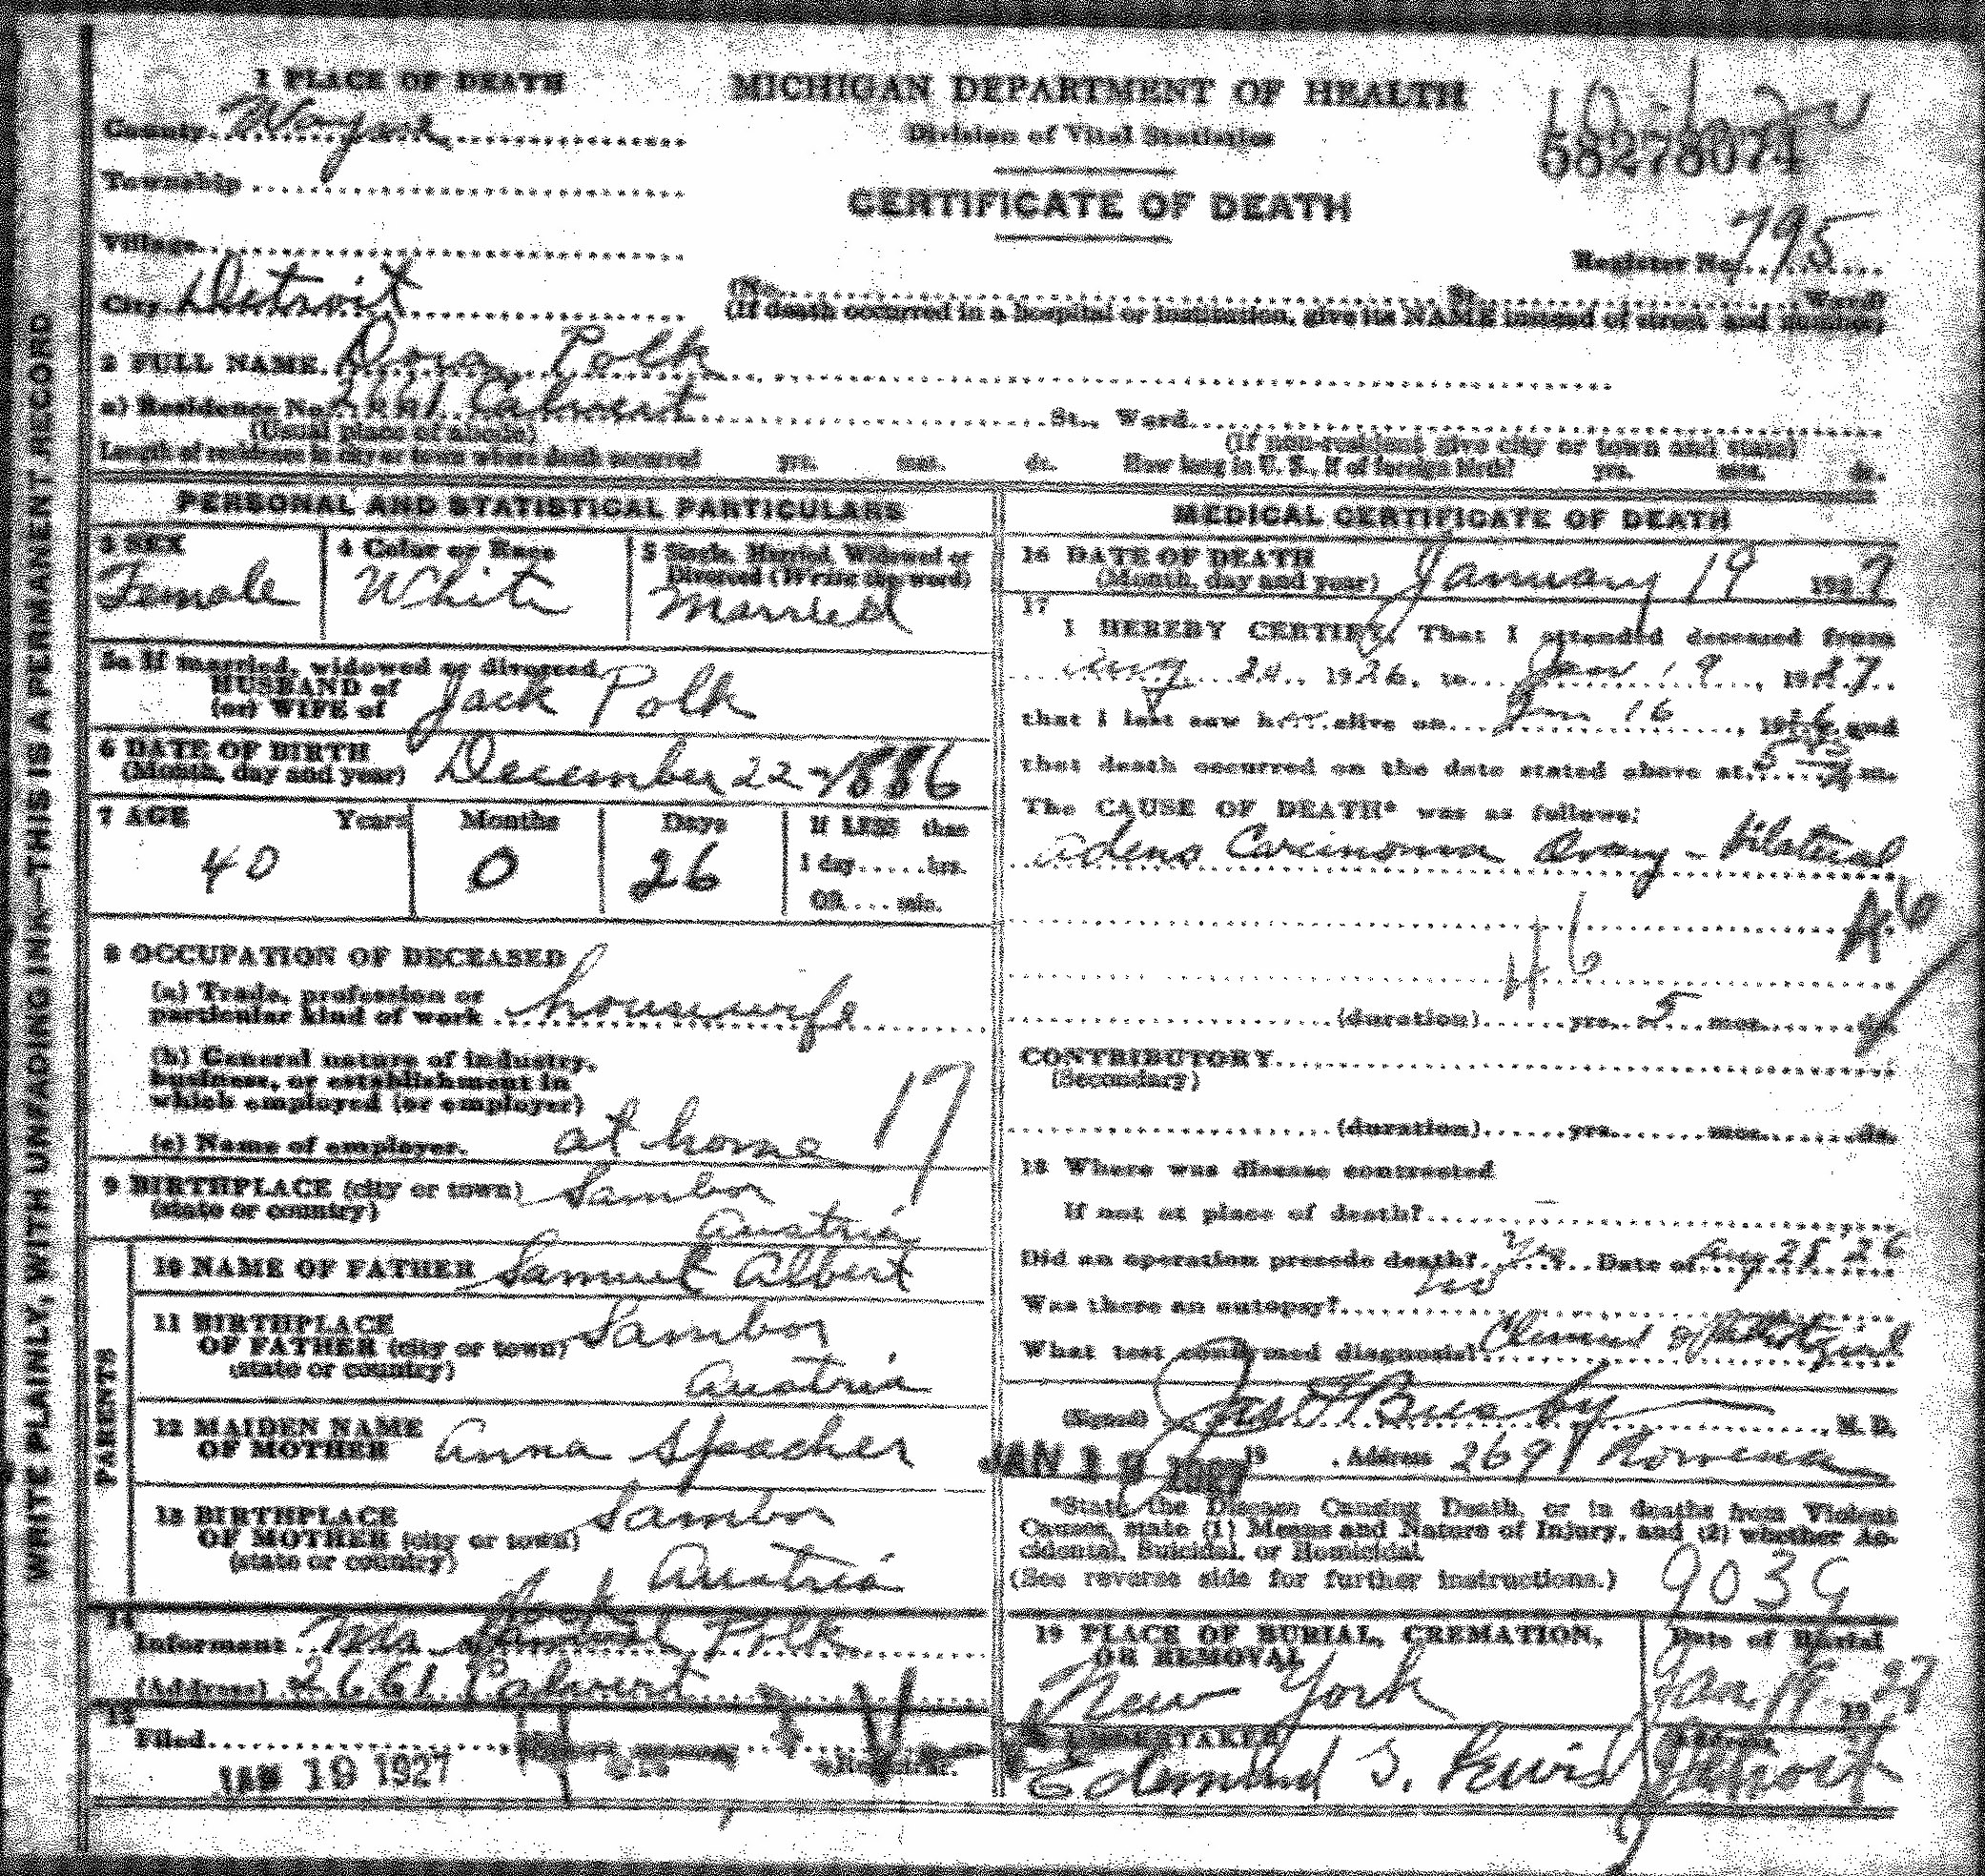 Dora albert vitals immigration records dora albert polk january 19 1927 michigan death certificate born dora dvore albert circa 1886 december 22 or 1887 in sambor galicia 1betcityfo Images